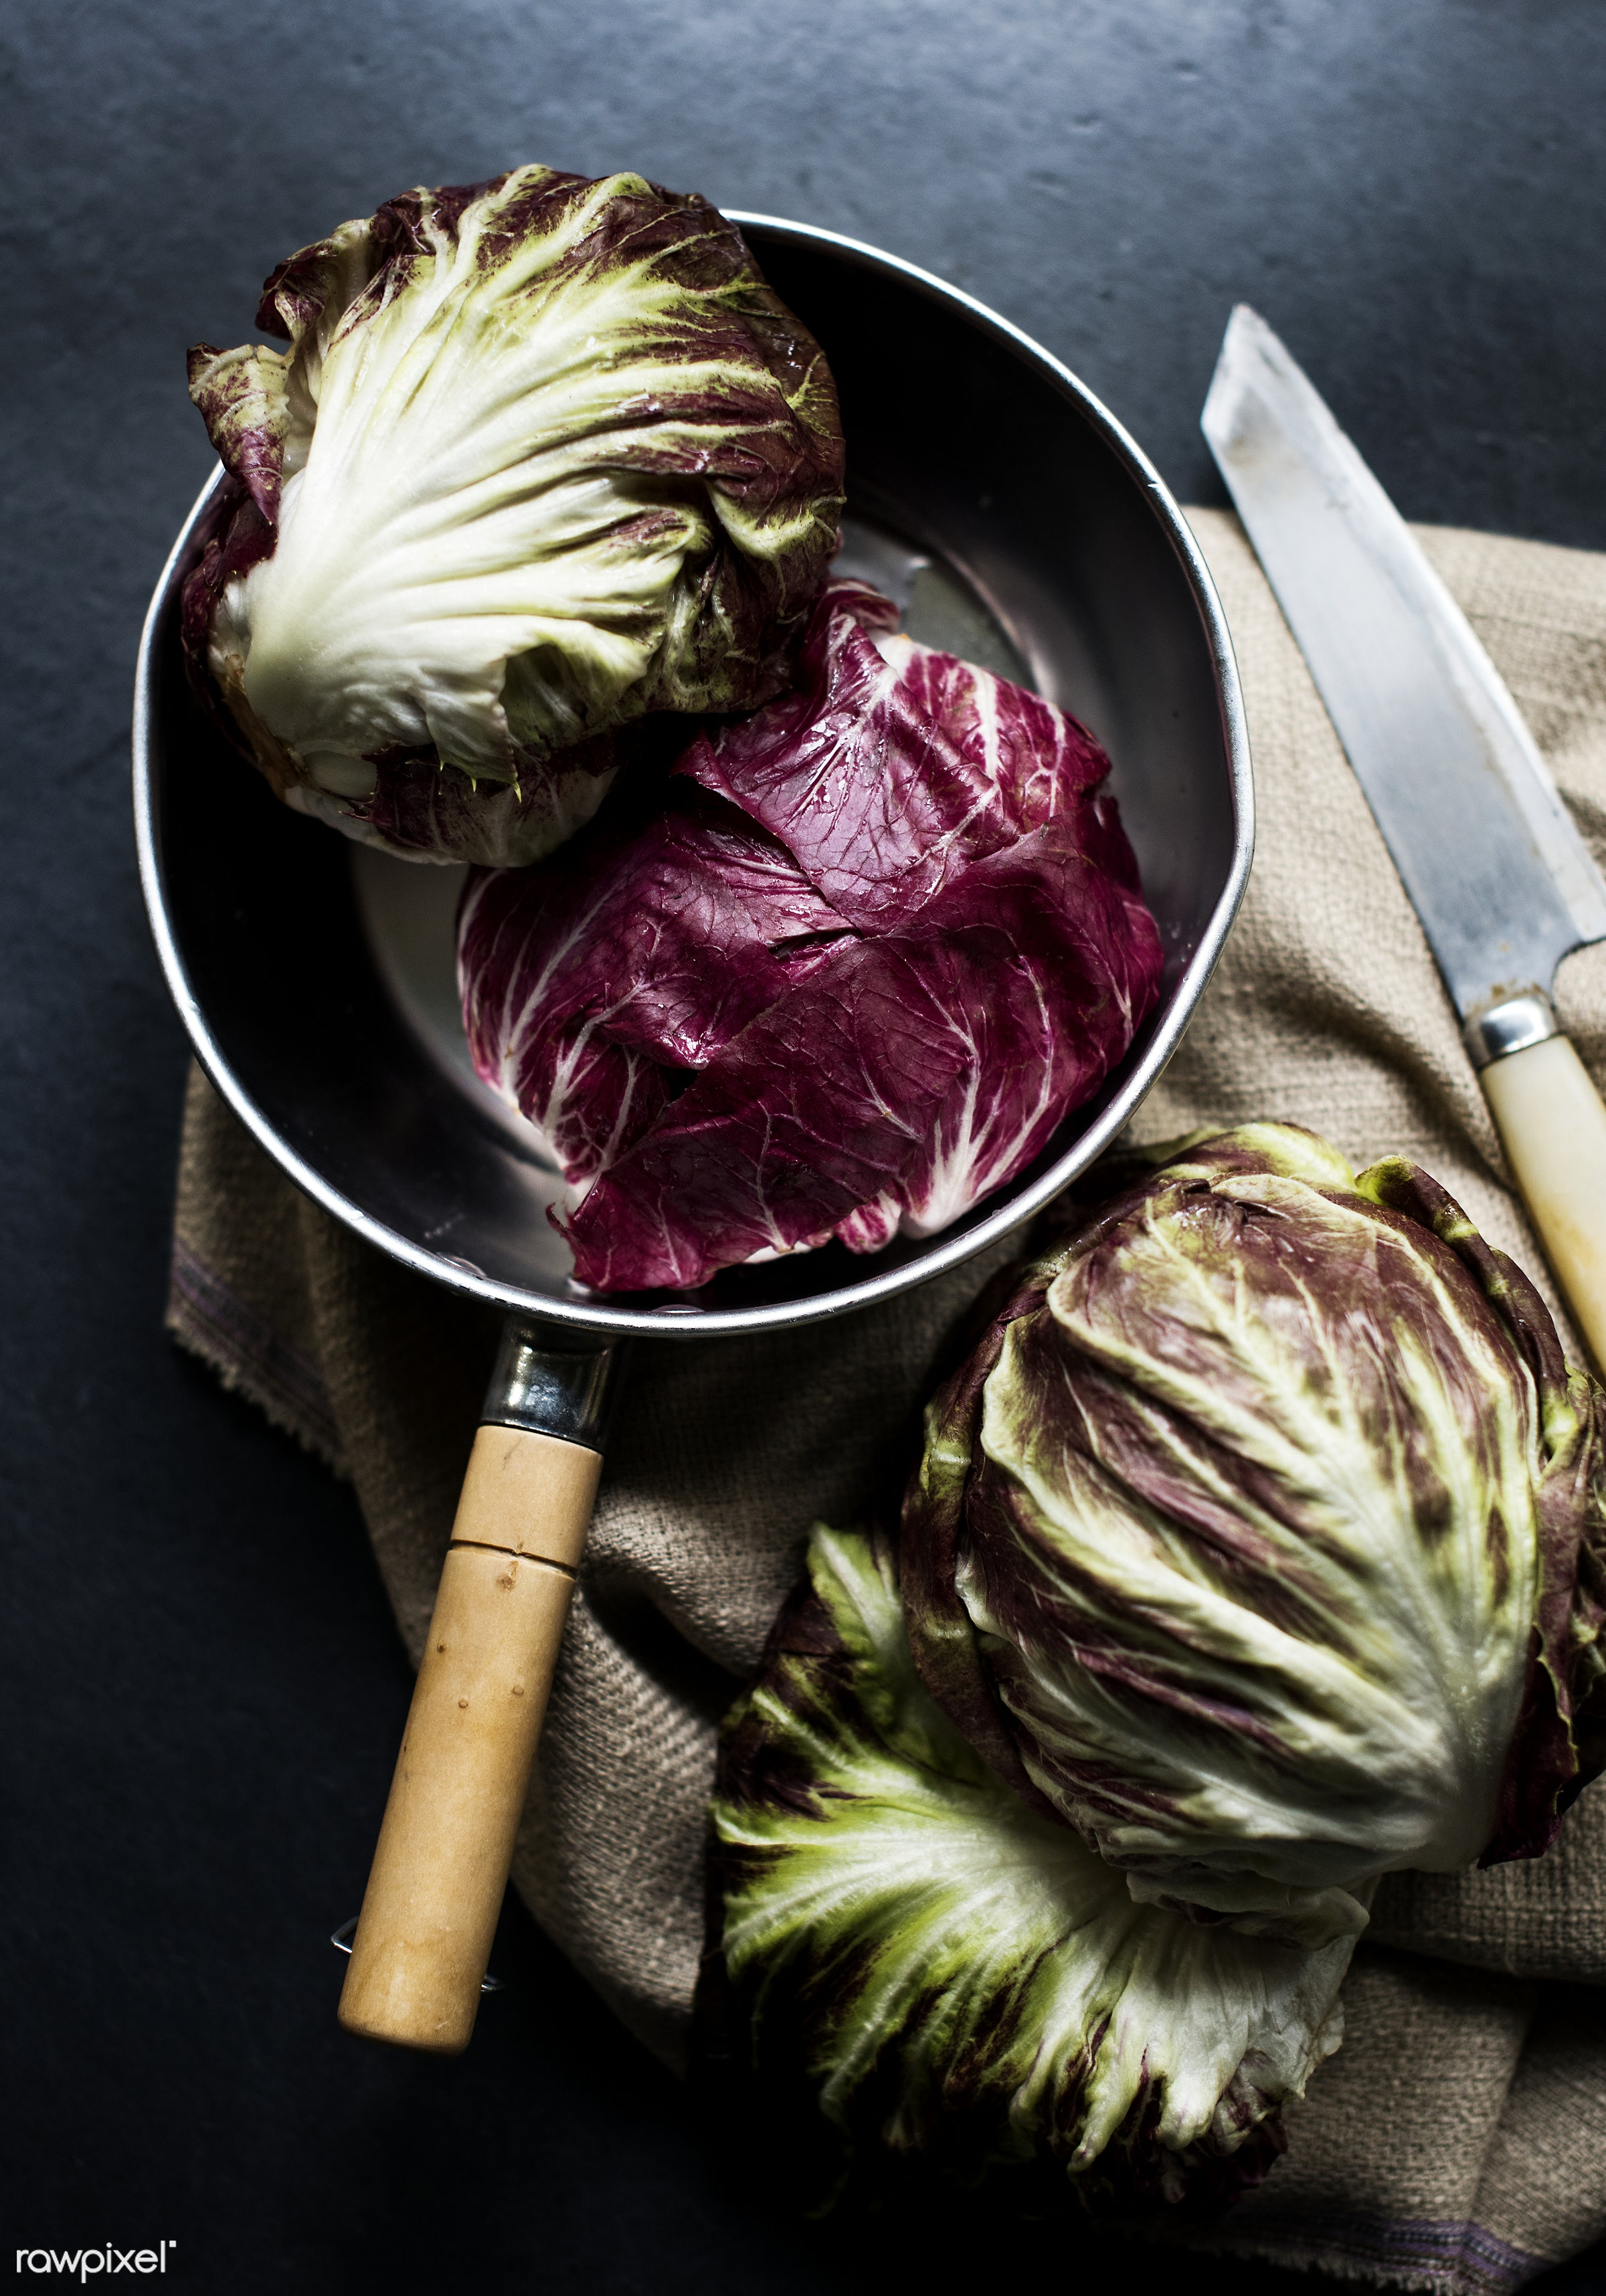 Red cabbage in a pot - raw, nobody, pot, ingredients, farm, nature, fresh, red cabbages, aerial view, products, closeup,...